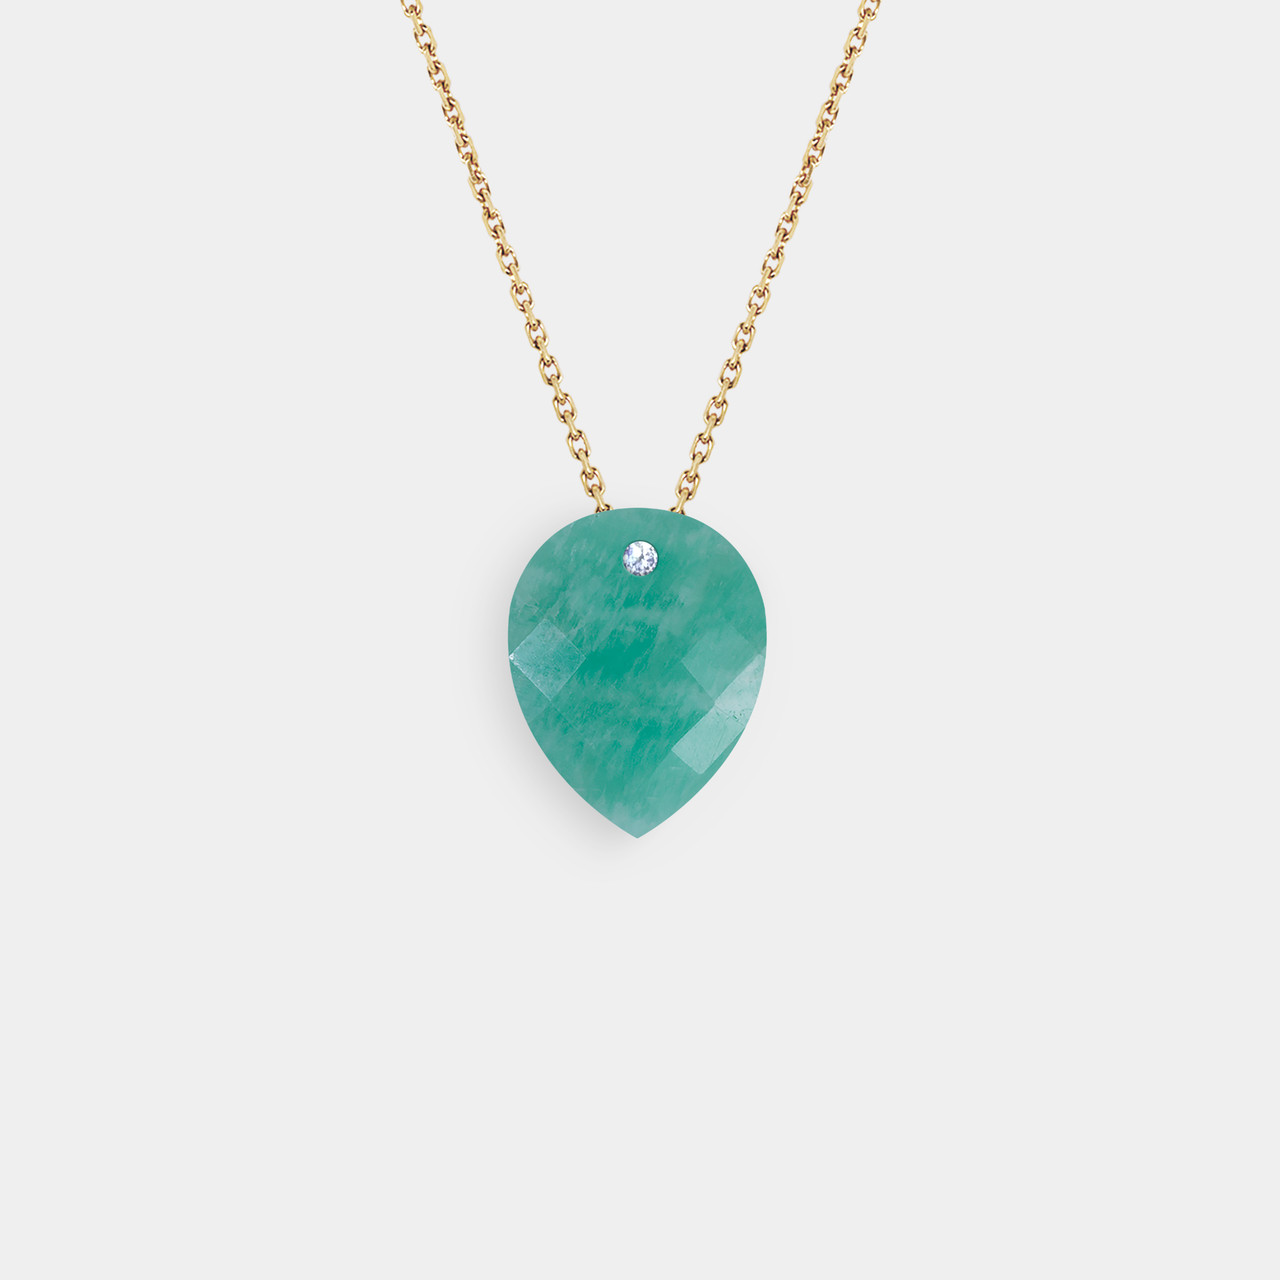 Collier Pierre 1 Dizmamant Amazonite, Collier Or Femme Amazonite